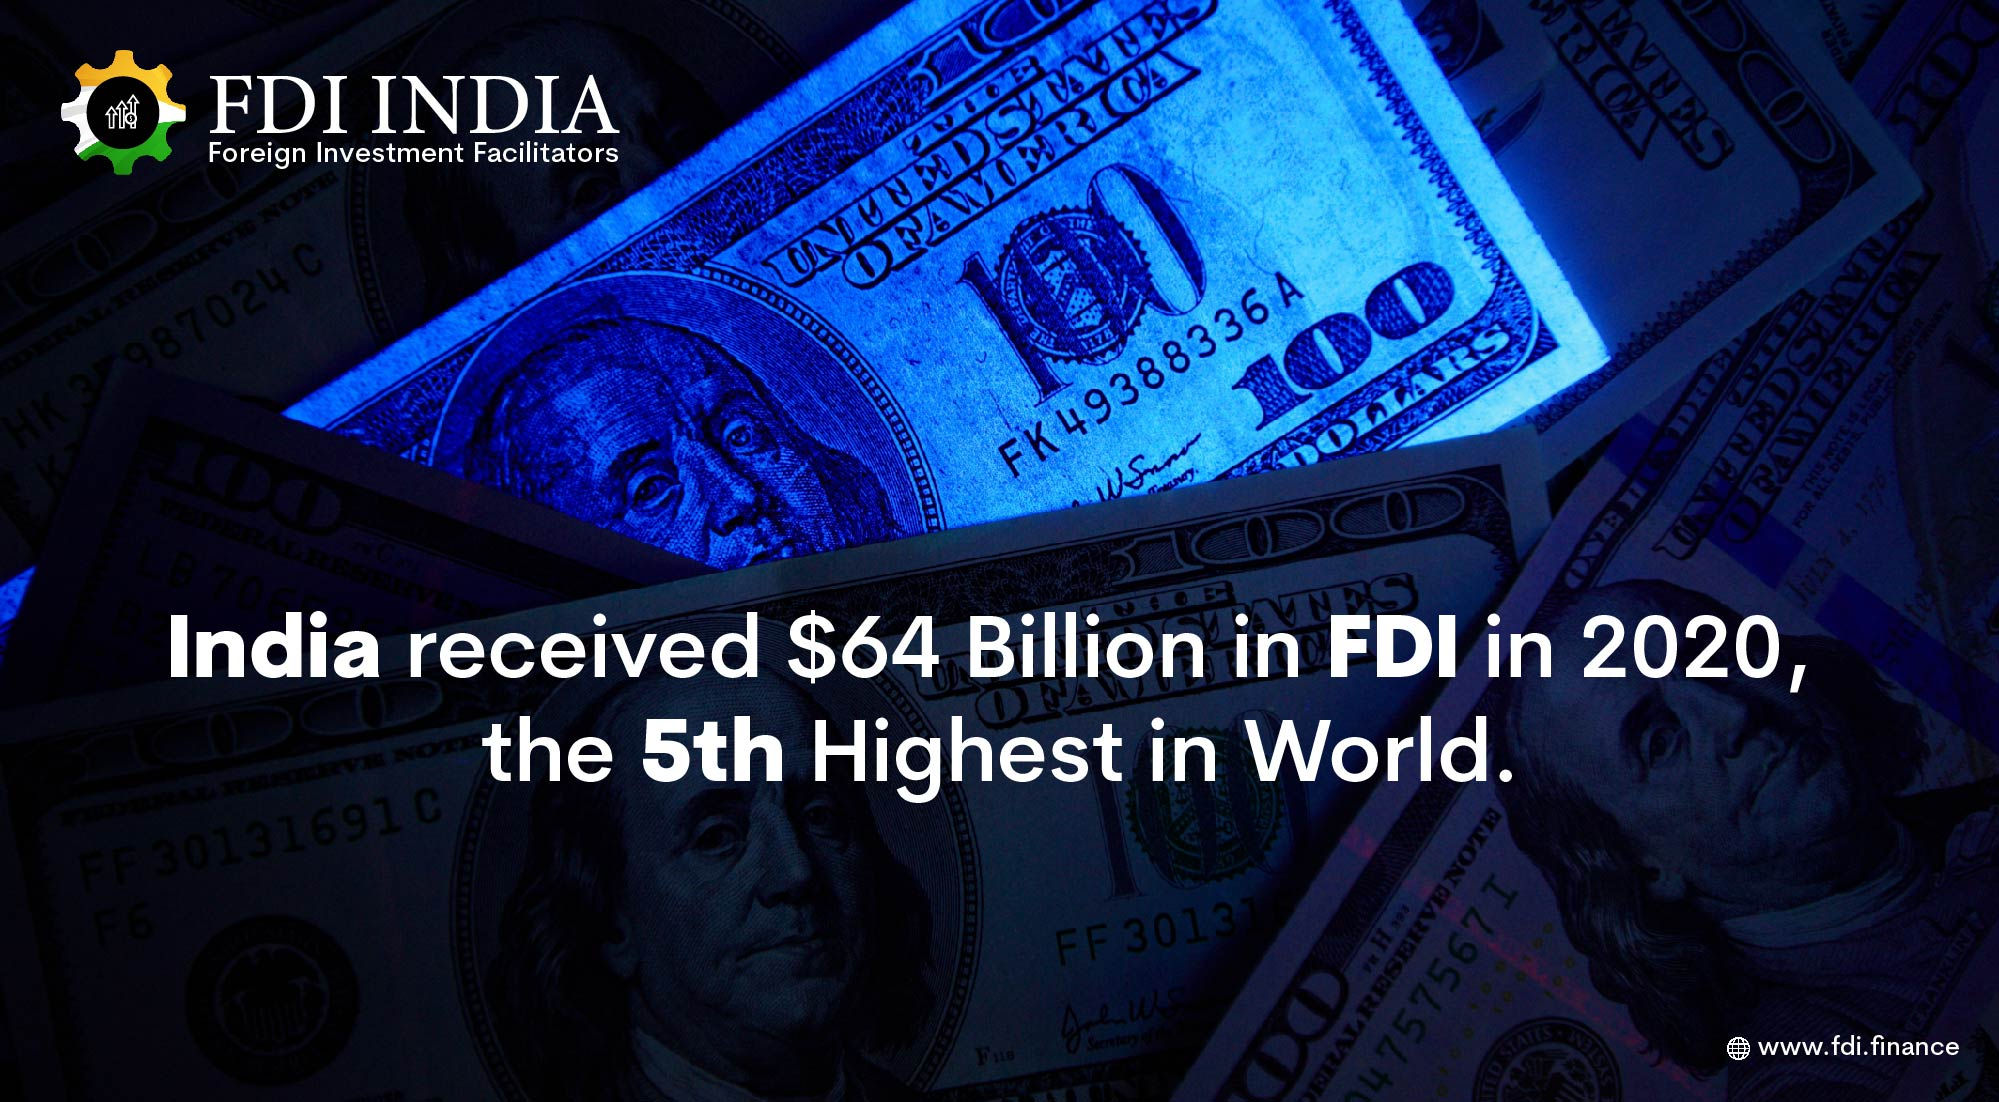 India Received $64 Billion in FDI in 2020, the 5th Highest in World